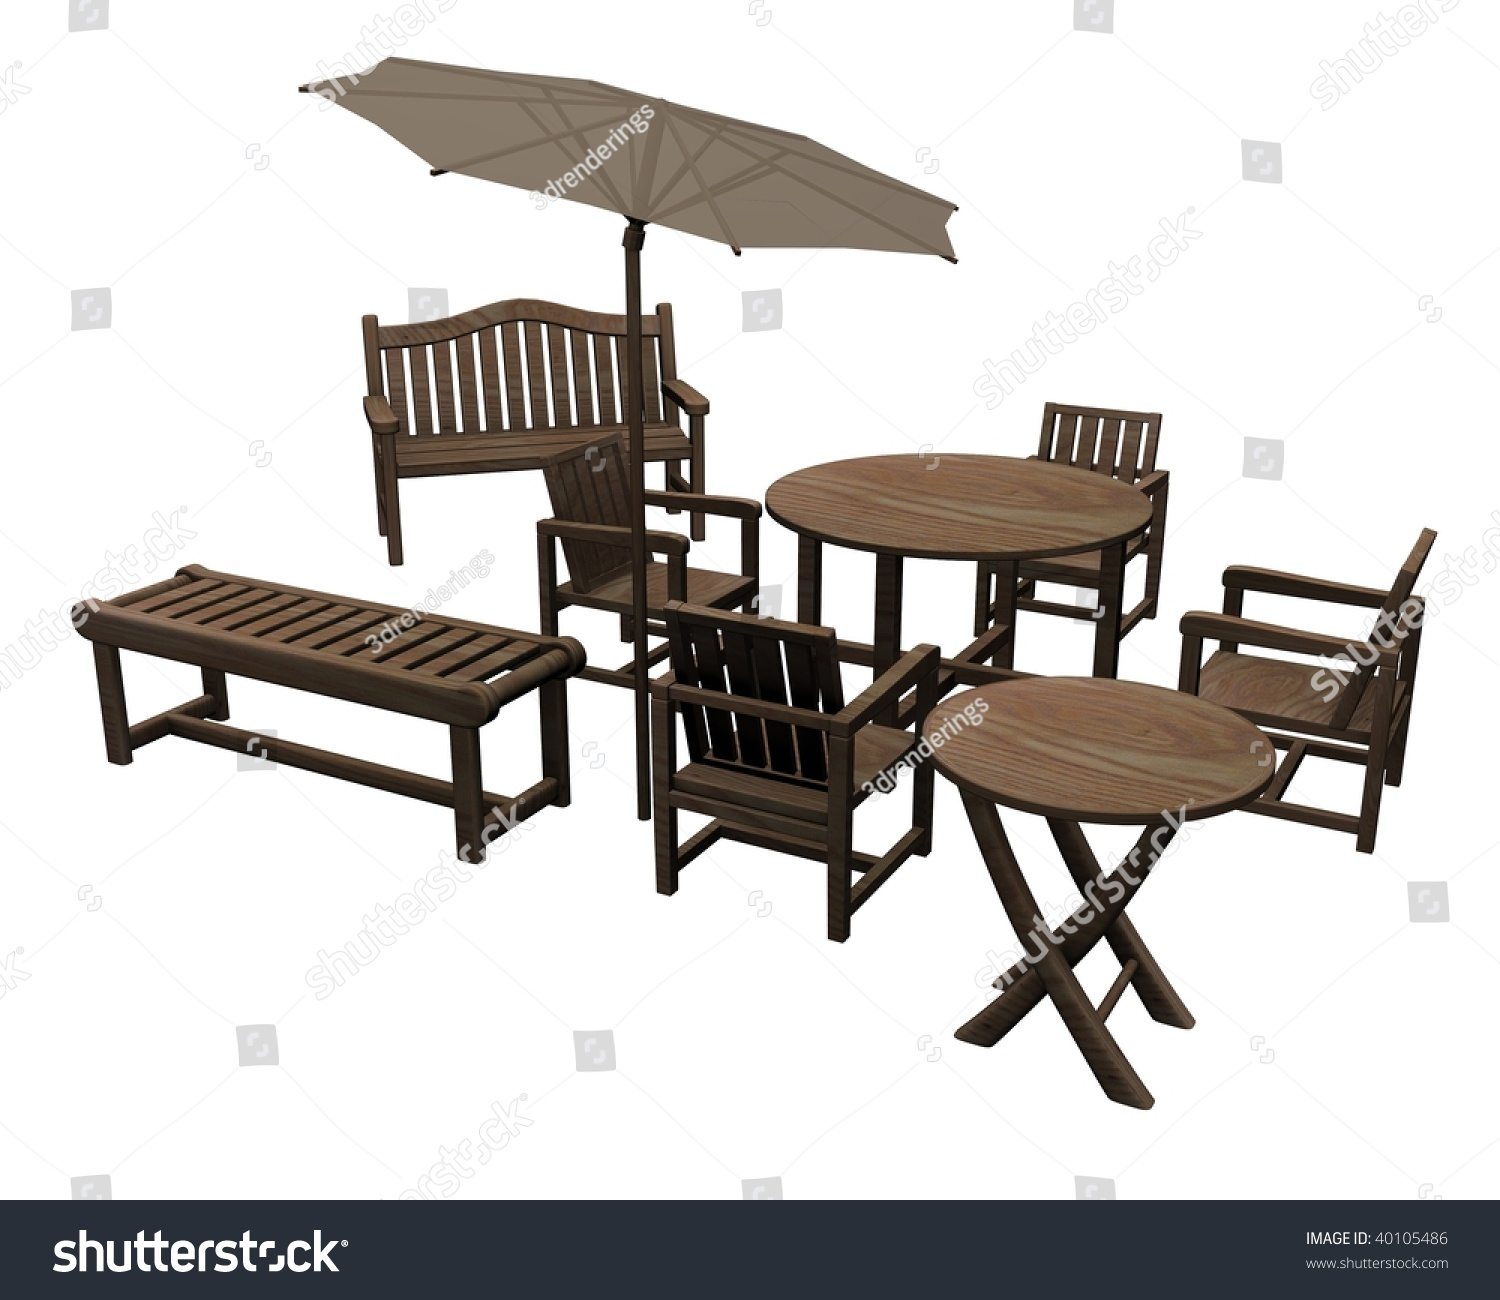 3d render of garden furniture